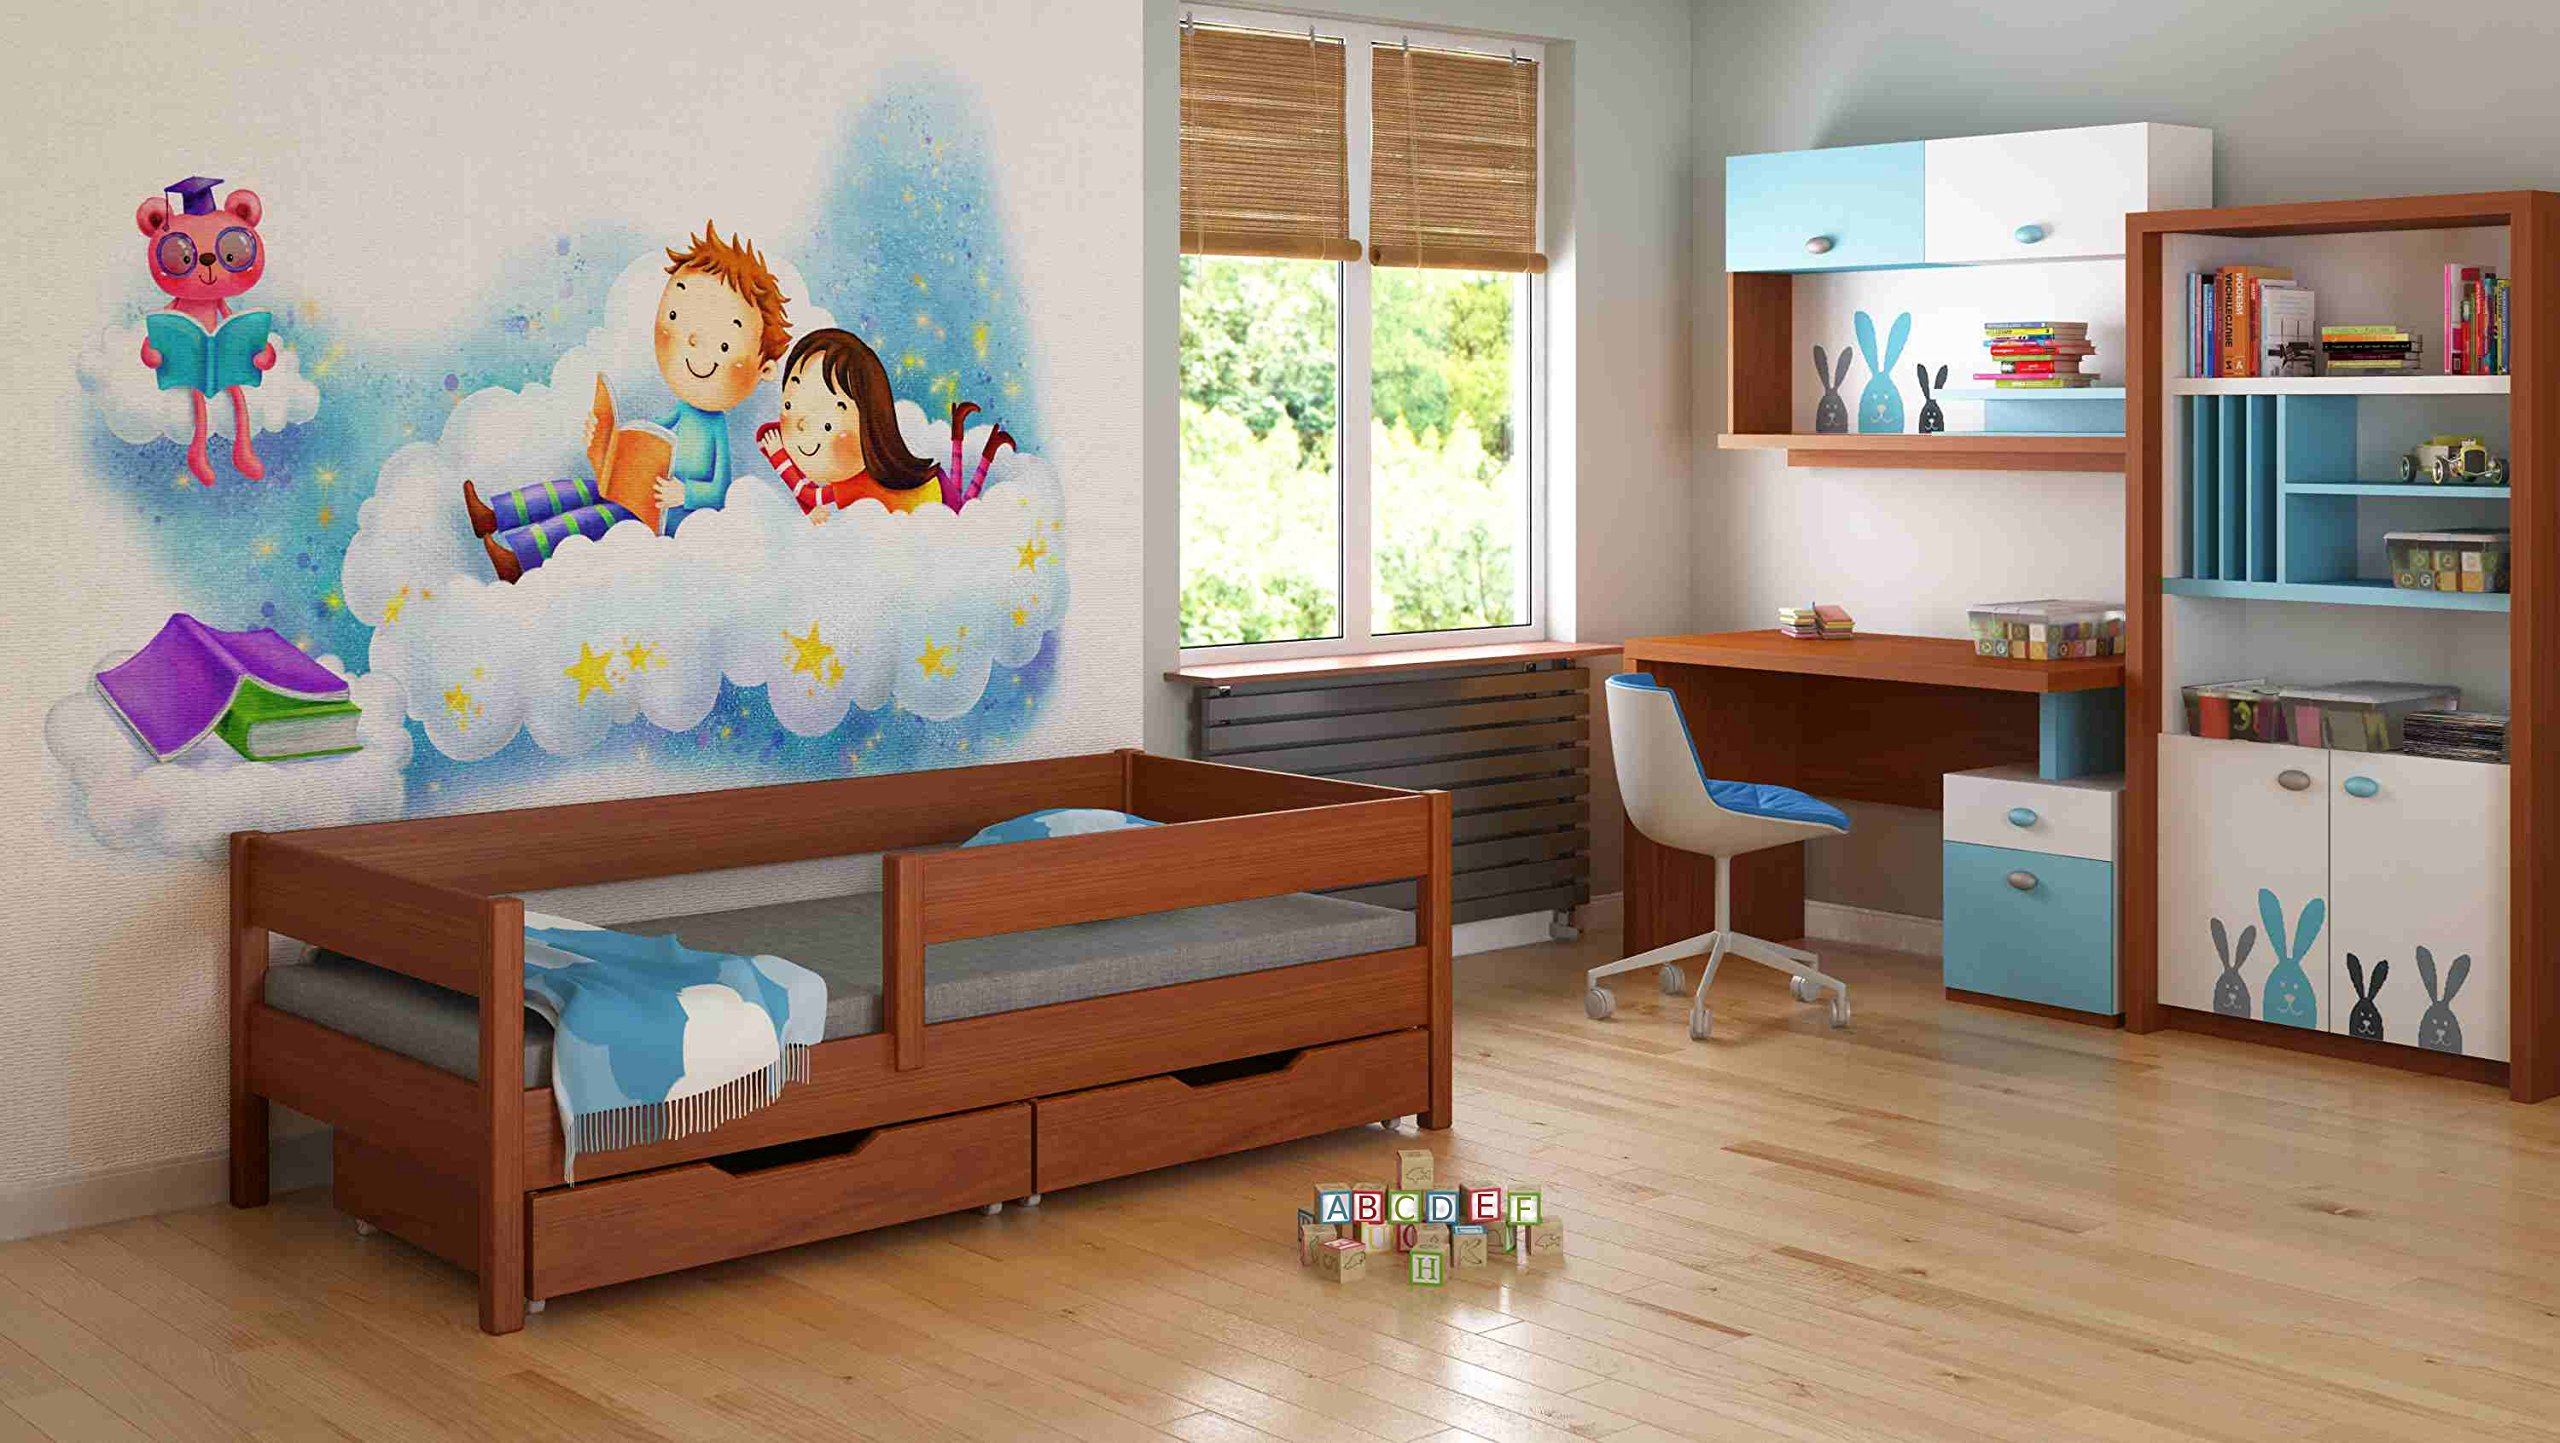 Children's Beds Home Single Beds For Kids Children Toddler Junior with drawers No Mattress Included...(140x70, Palisander) Children's Beds Home Bed with barriers - internal dimensions 140x70, 160x80, 180x80, 180x90, 200x90 (External dimensions: 147x77, 167x87, 187x87, 187x97, 207x97) Bed frame with load capacity of 150 kg, Fittings + installation instructions Universal bed entrance - right or left side, front barrier can be removed at later stage. 2